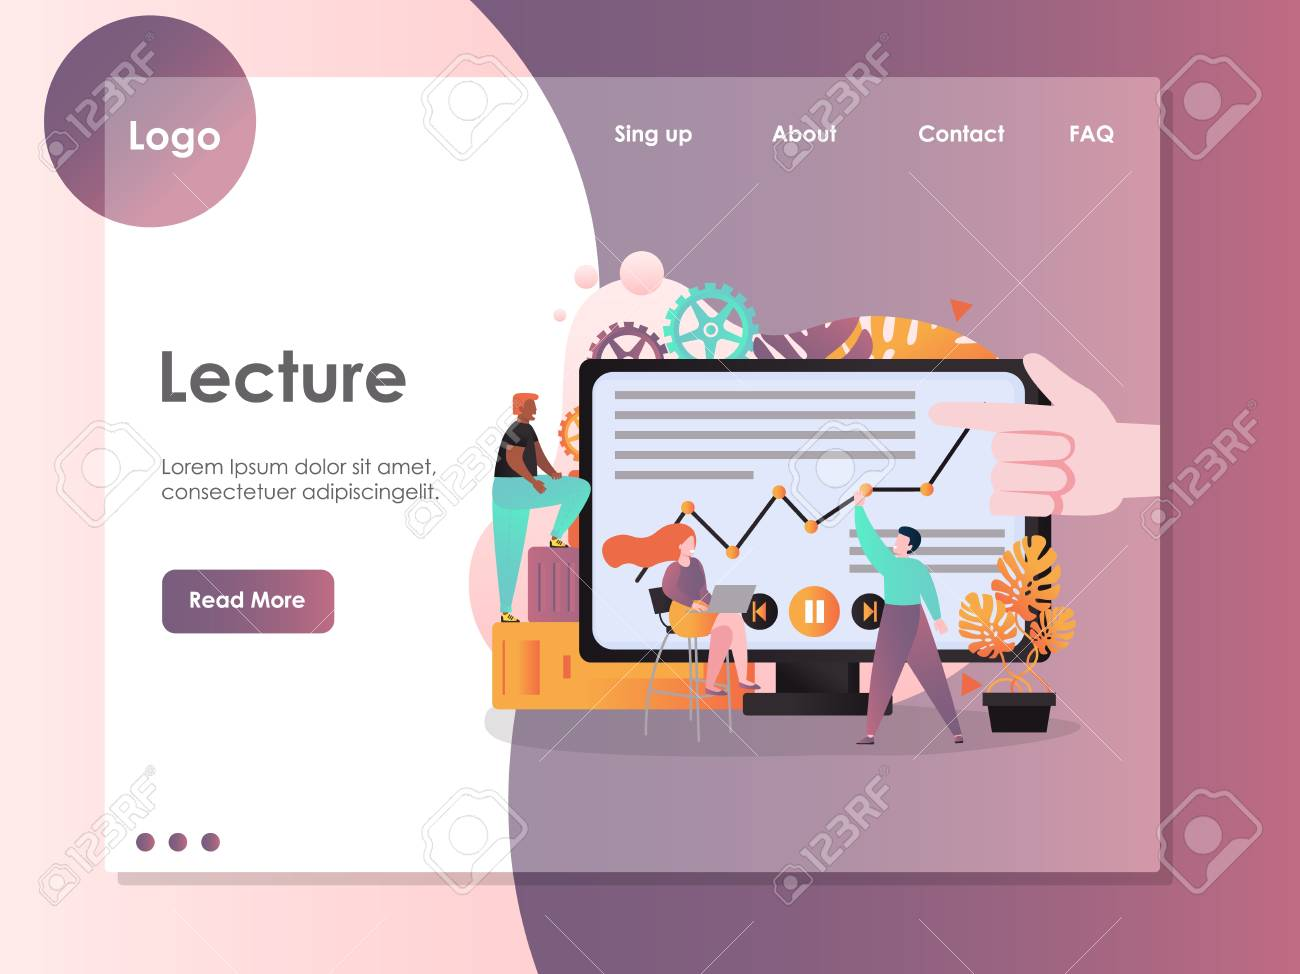 Lecture Vector Website Template Web Page And Landing Page Design Royalty Free Cliparts Vectors And Stock Illustration Image 120798798